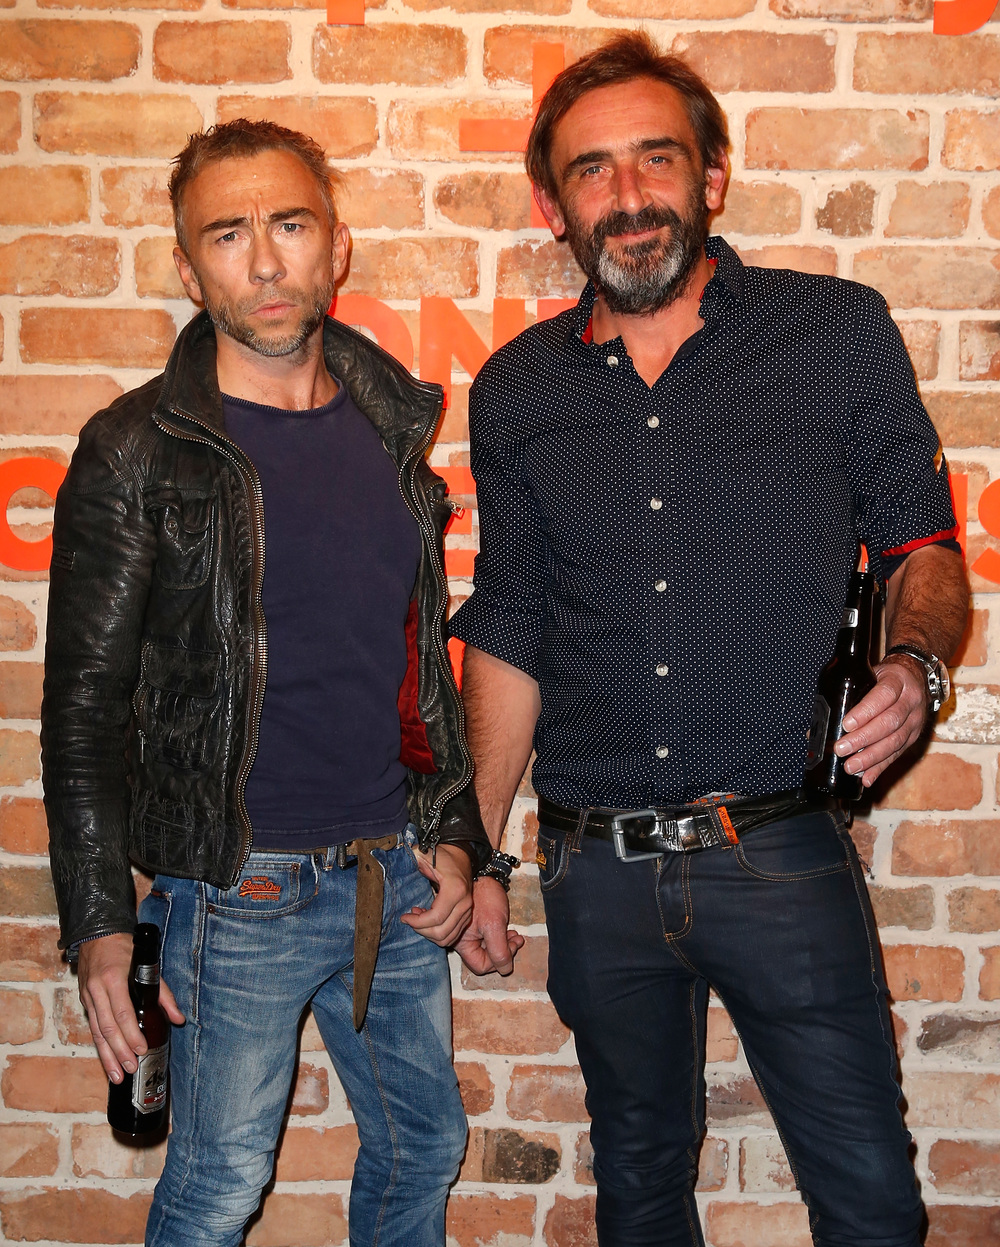 Superdry co-founders James Holder and Julian Dunkerton